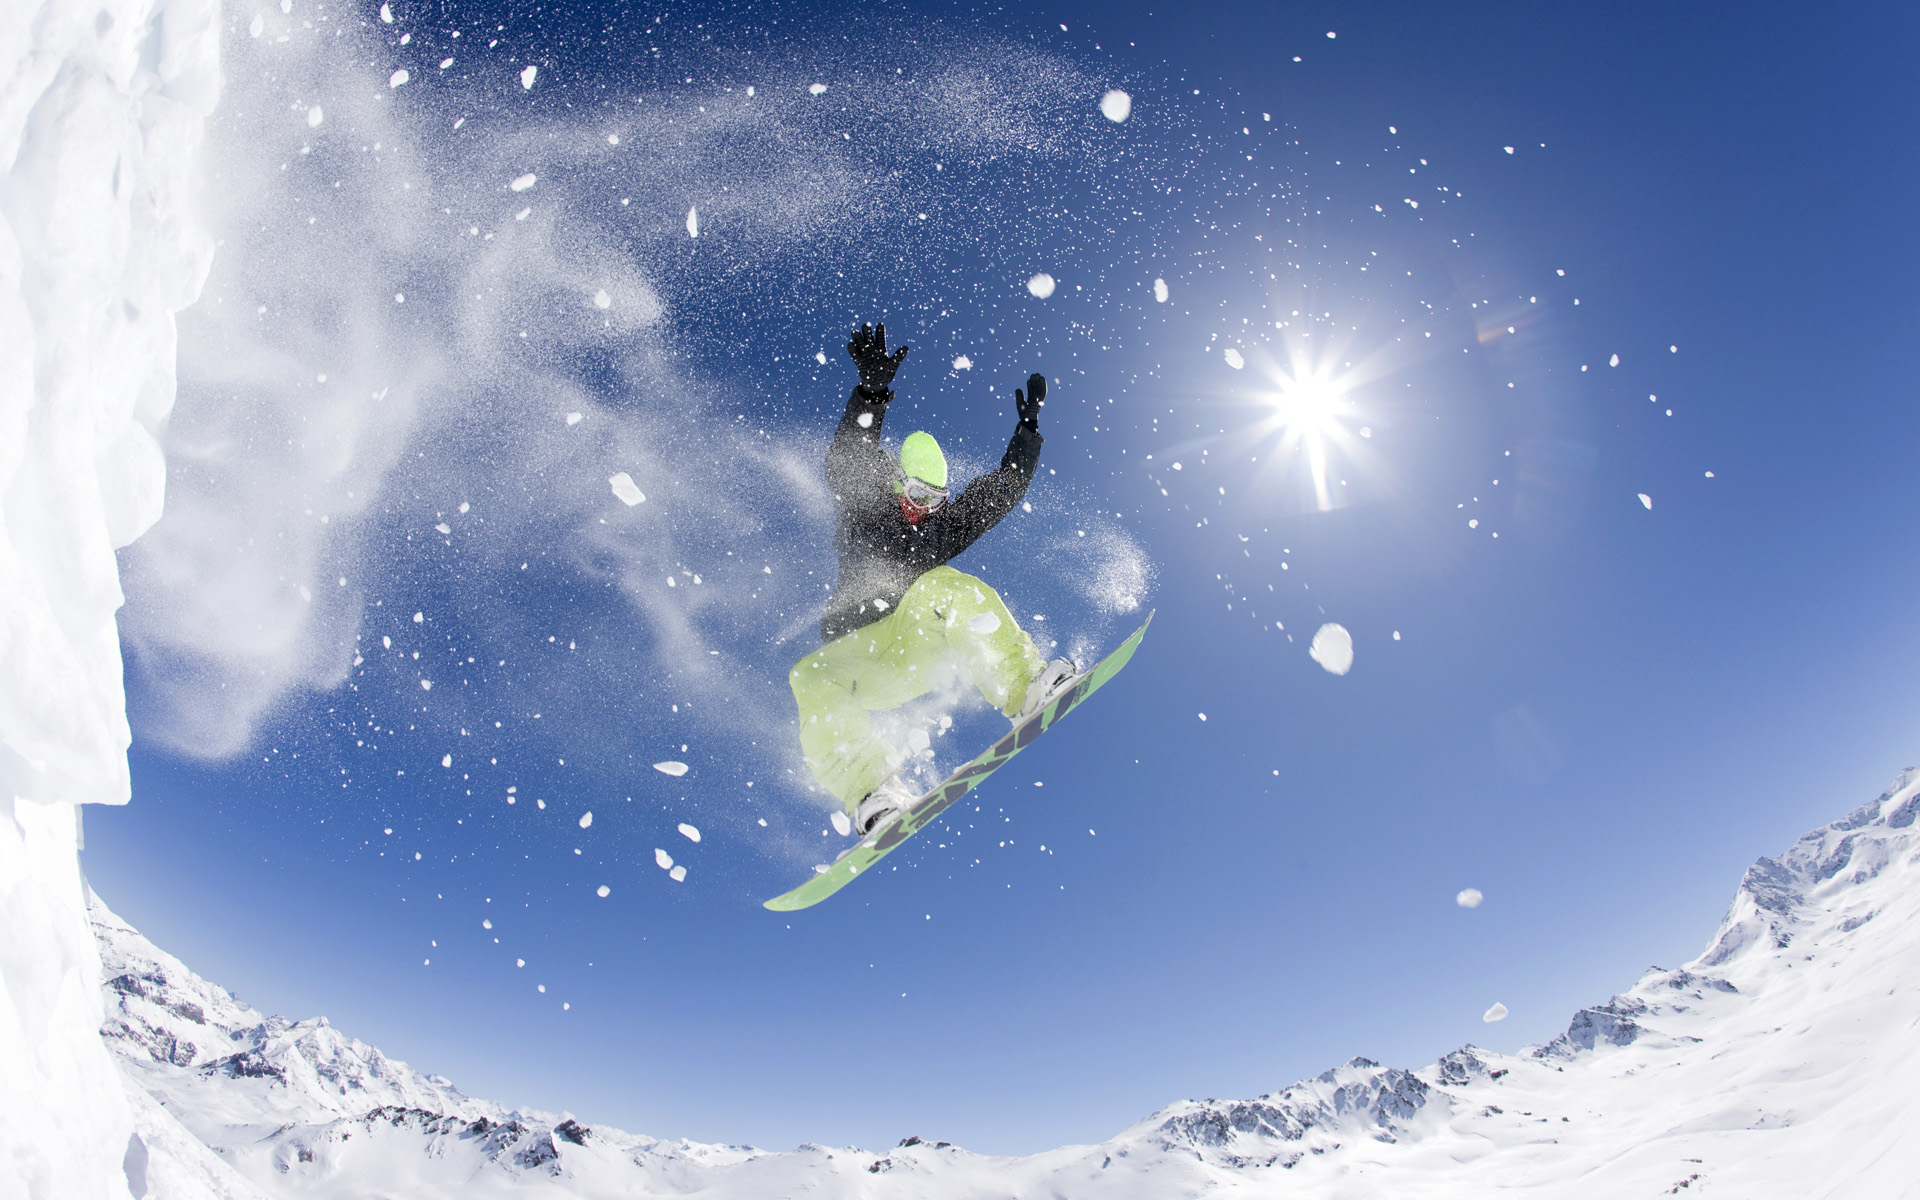 Snowboard Bank Snowboarding Images Snowboarding Hd Wallpaper And